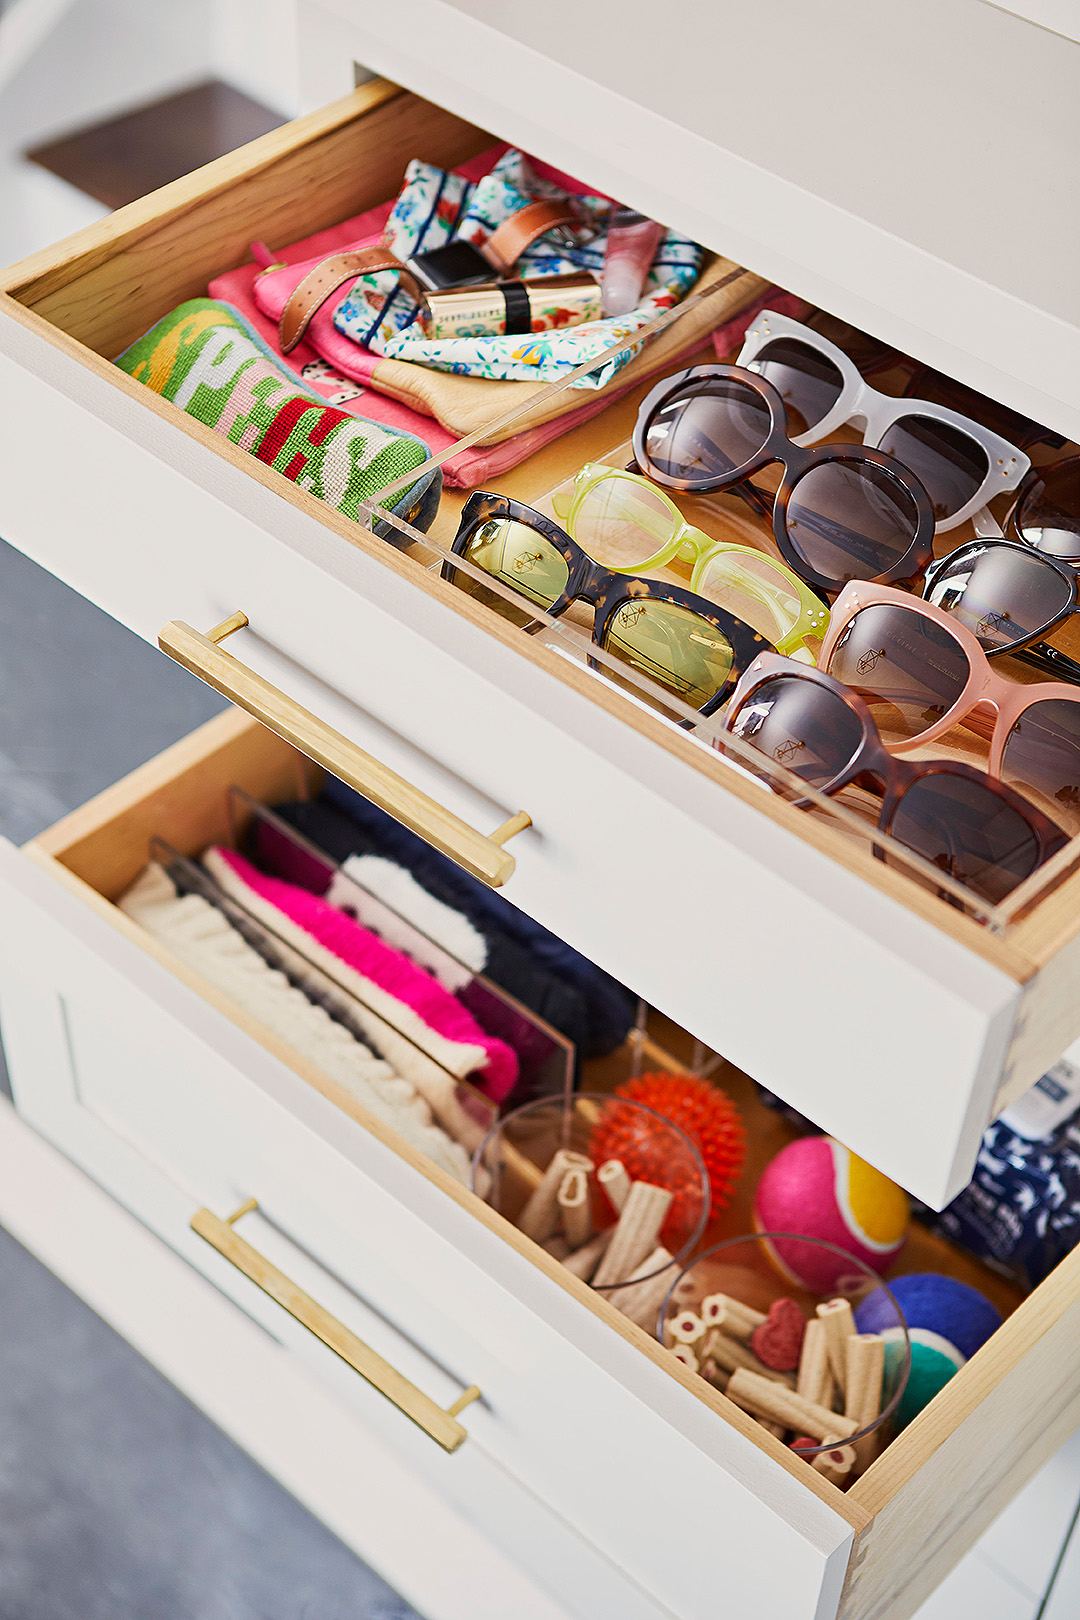 organized drawers filled with sunglasses, scarves, dog balls, dog treats